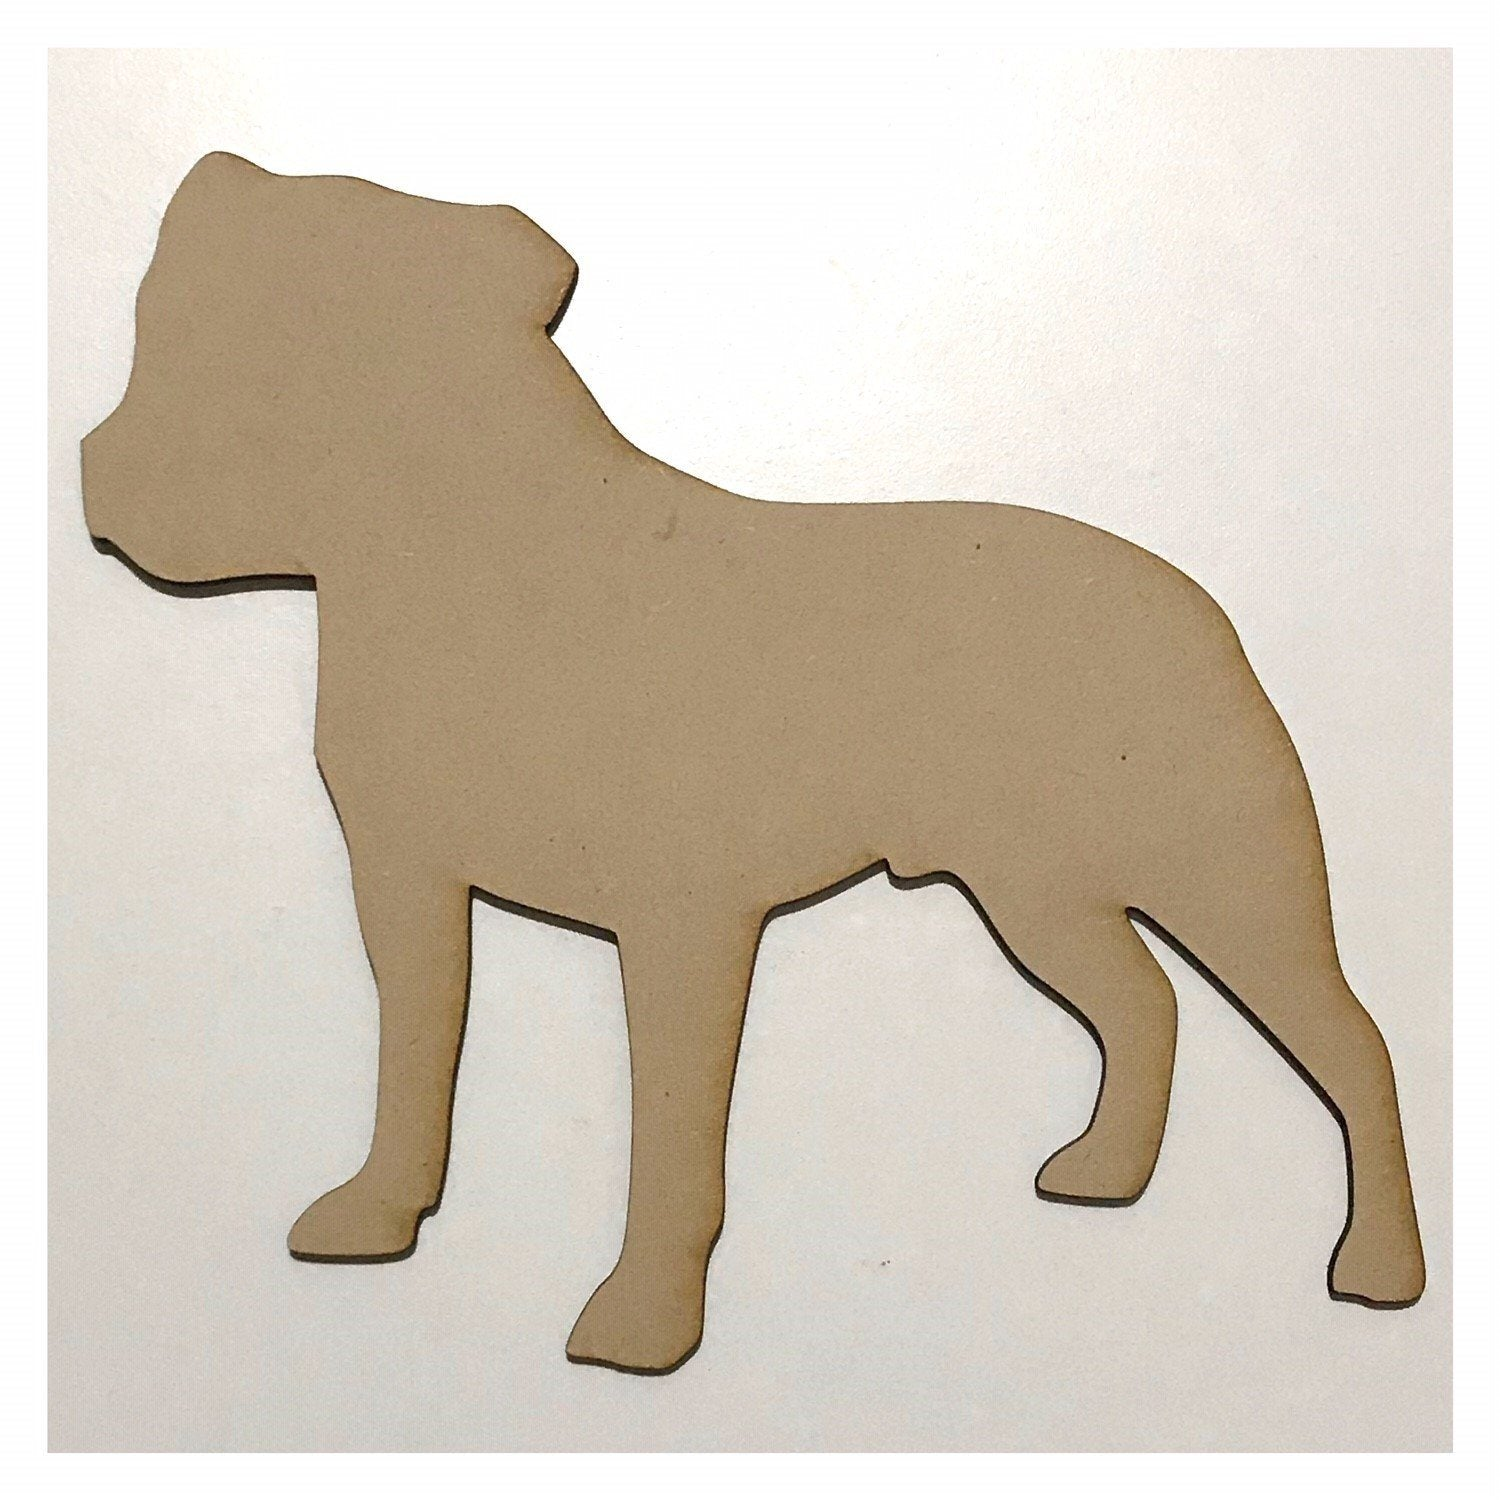 Staffordshire Bull Terrier Staffy Dog DIY Raw MDF Timber - The Renmy Store